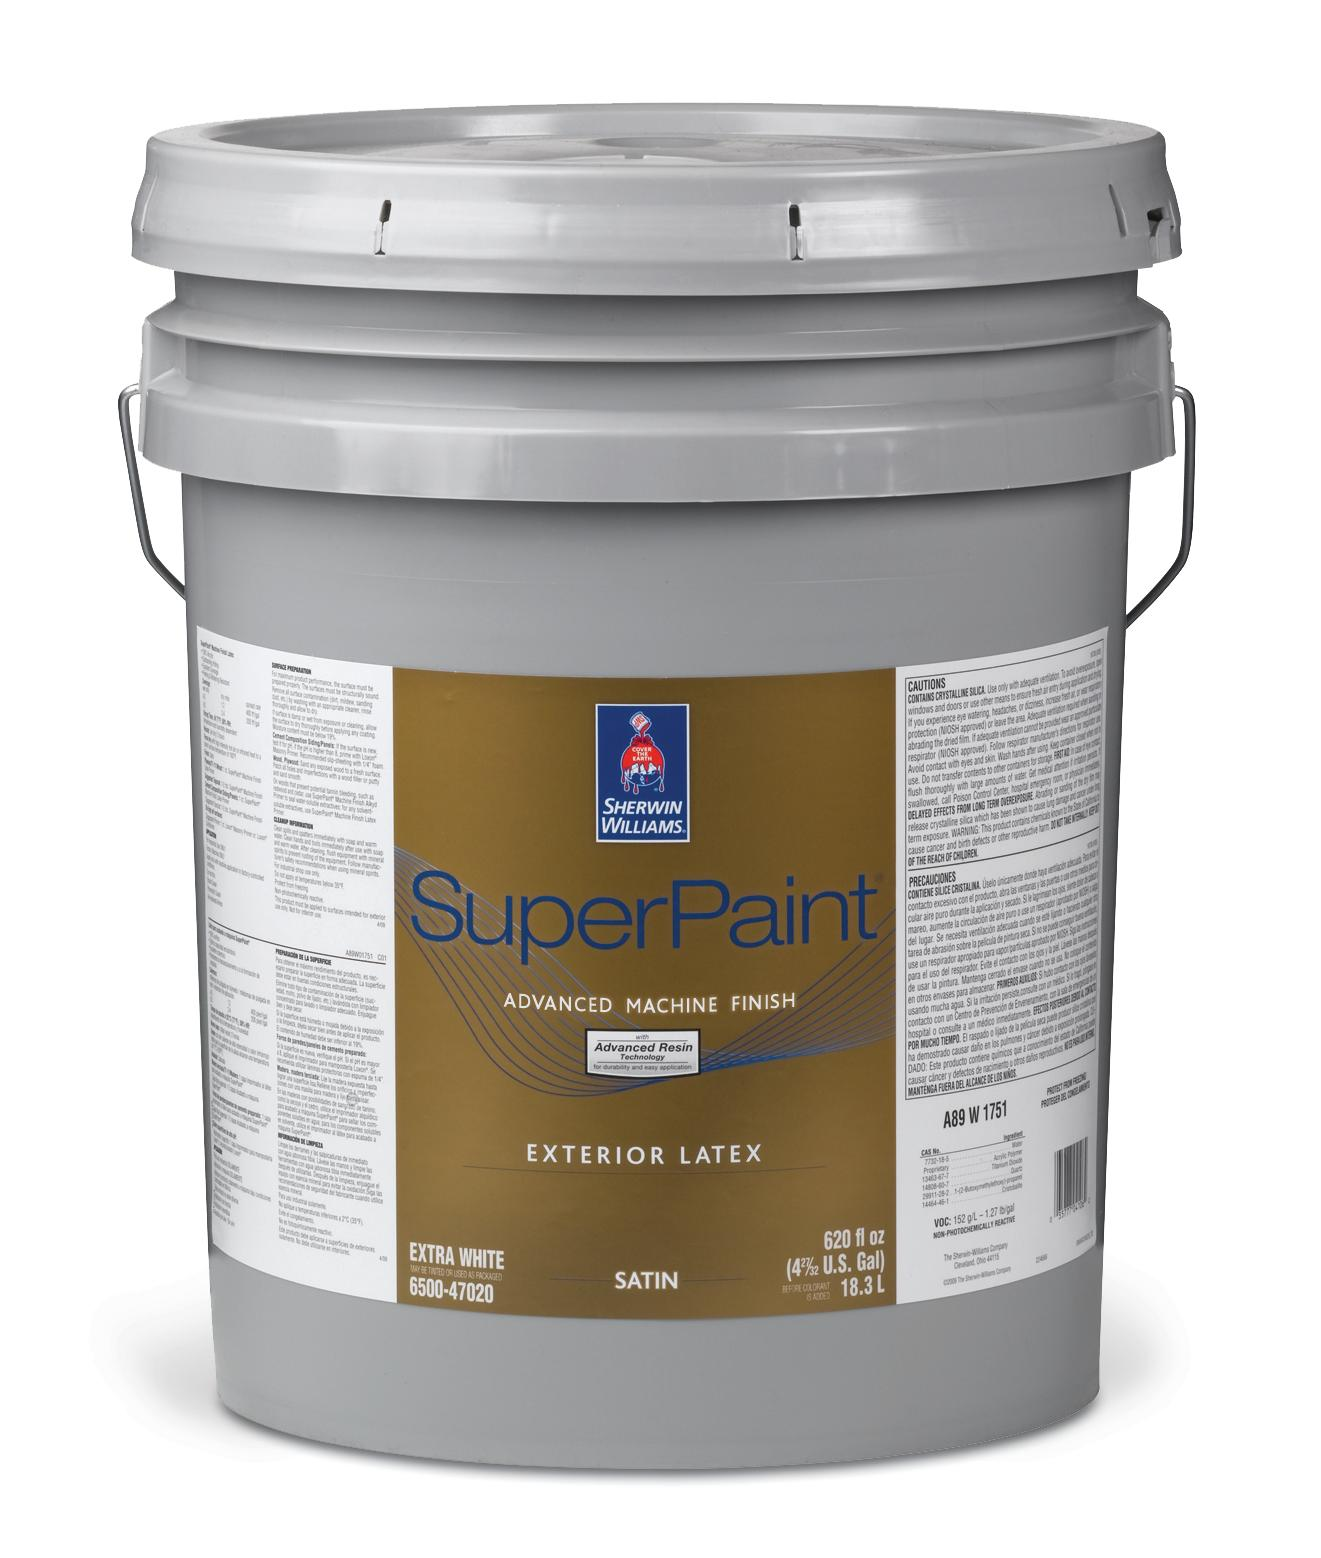 Sherwin Williams Superpaint Advanced Machine Finish